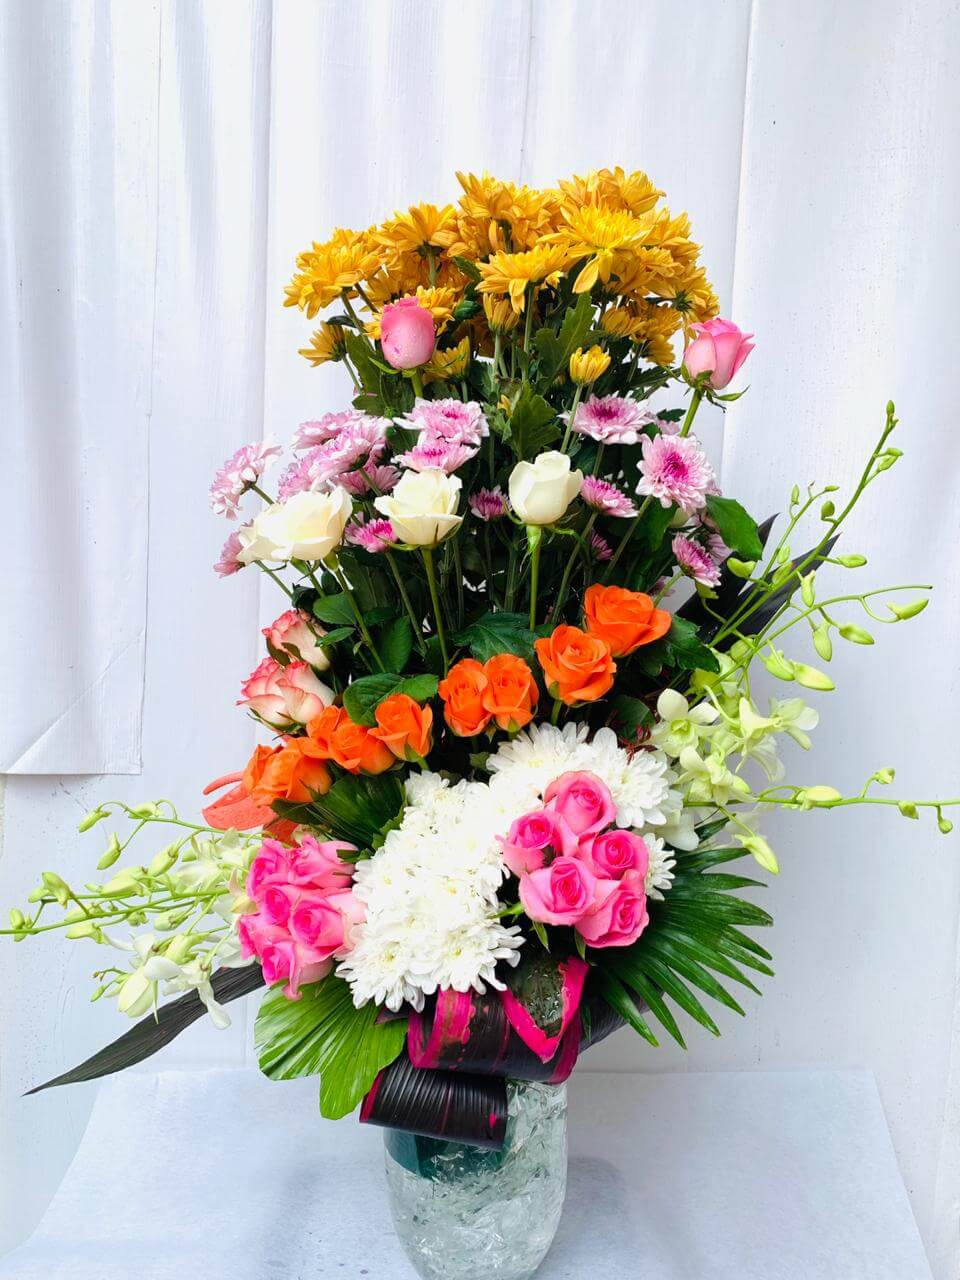 Vase Bouquet Arrangement of Roses, Chrysanthemums, Orchids